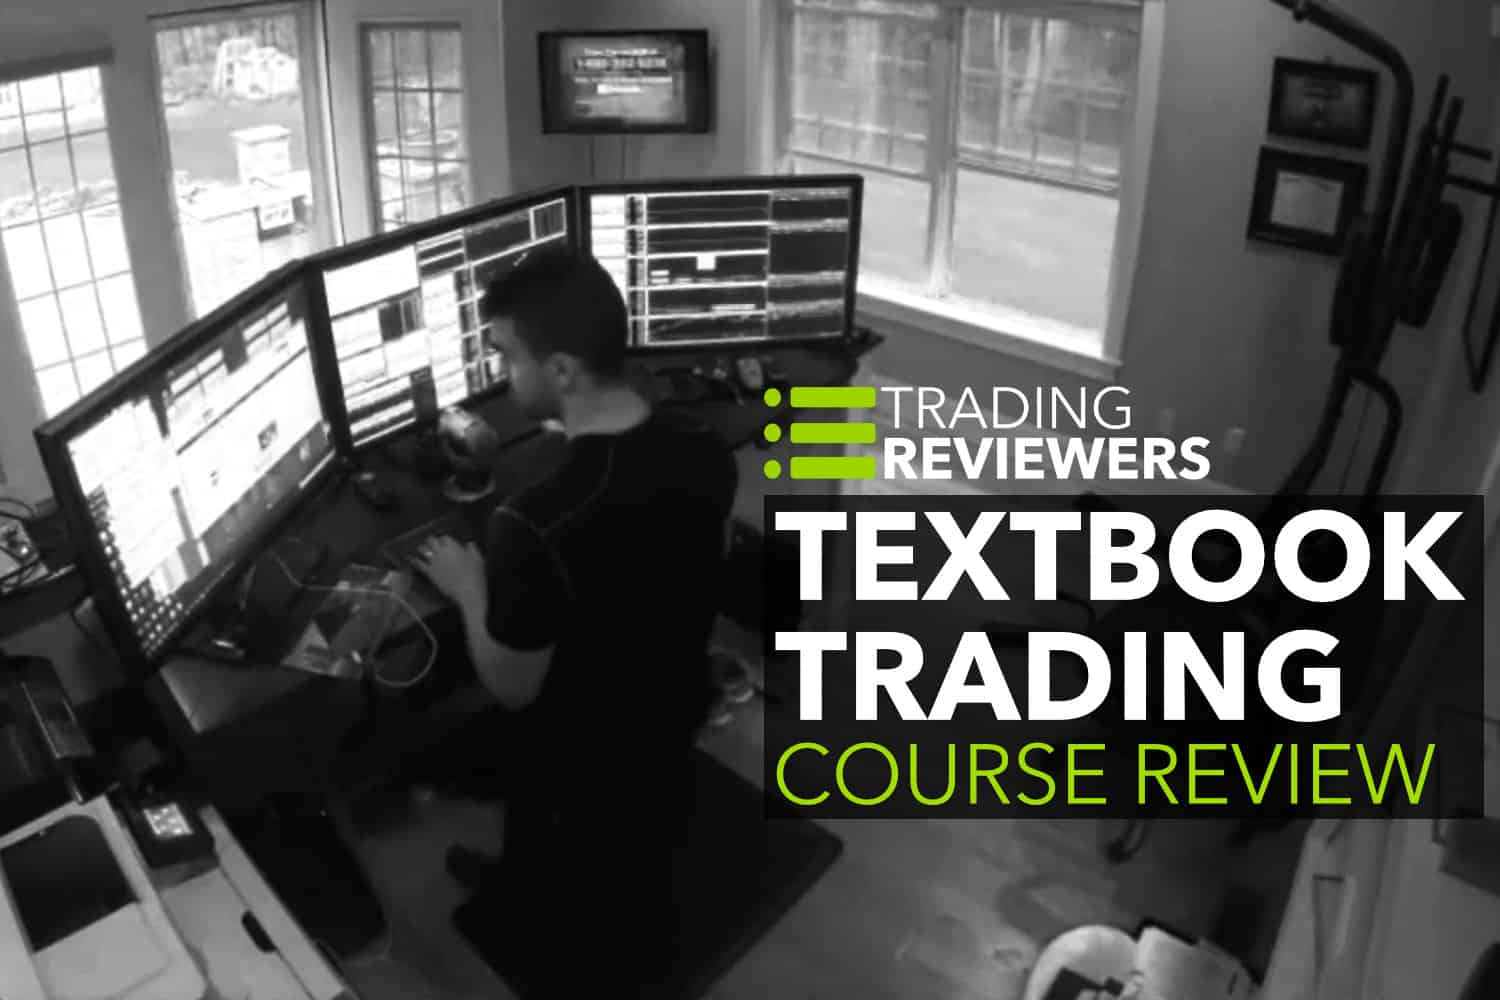 Textbook Trading